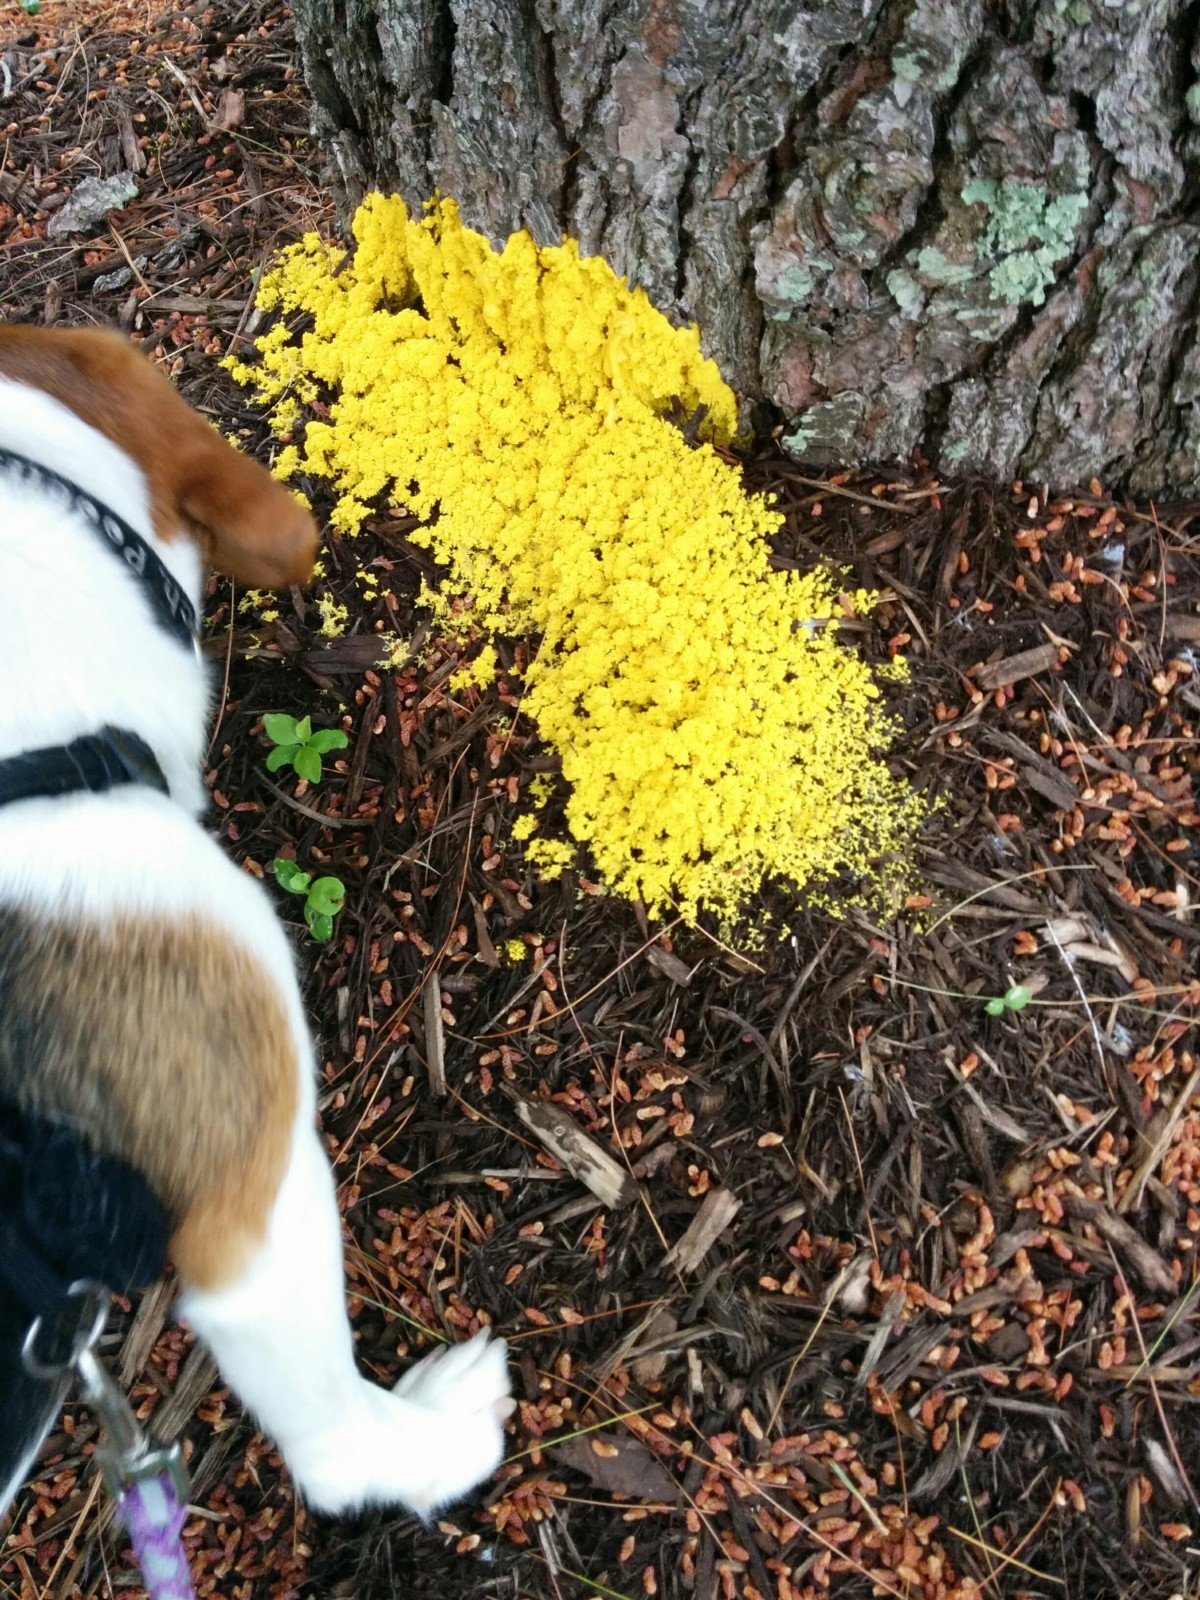 How Do Slime Molds Get Their Food